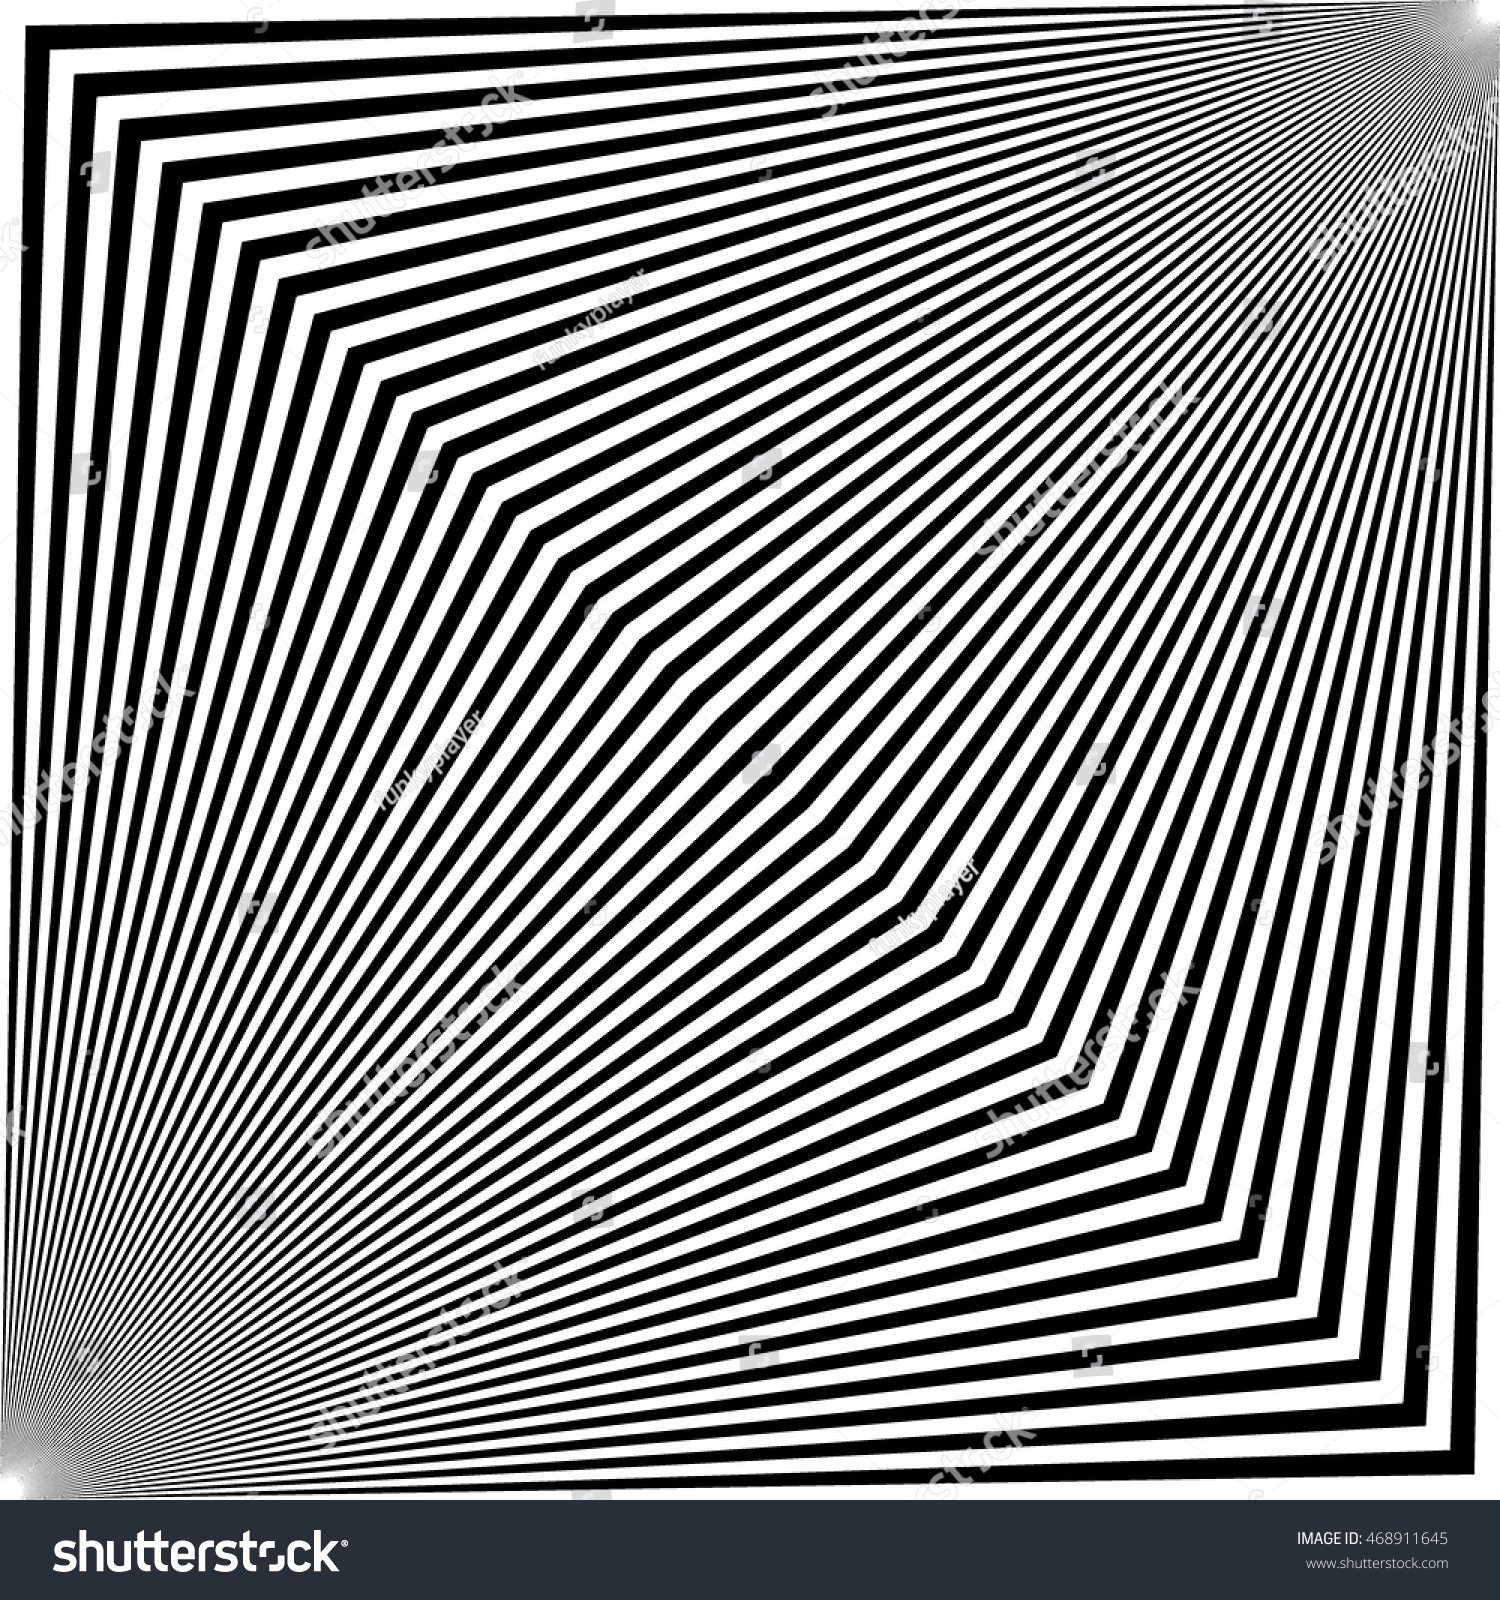 And black diagonal stripes background seamless background or wallpaper - Diagonal Striped Pattern Repeated Lines Texture Background Abstract Wallpaper Vector Illustration